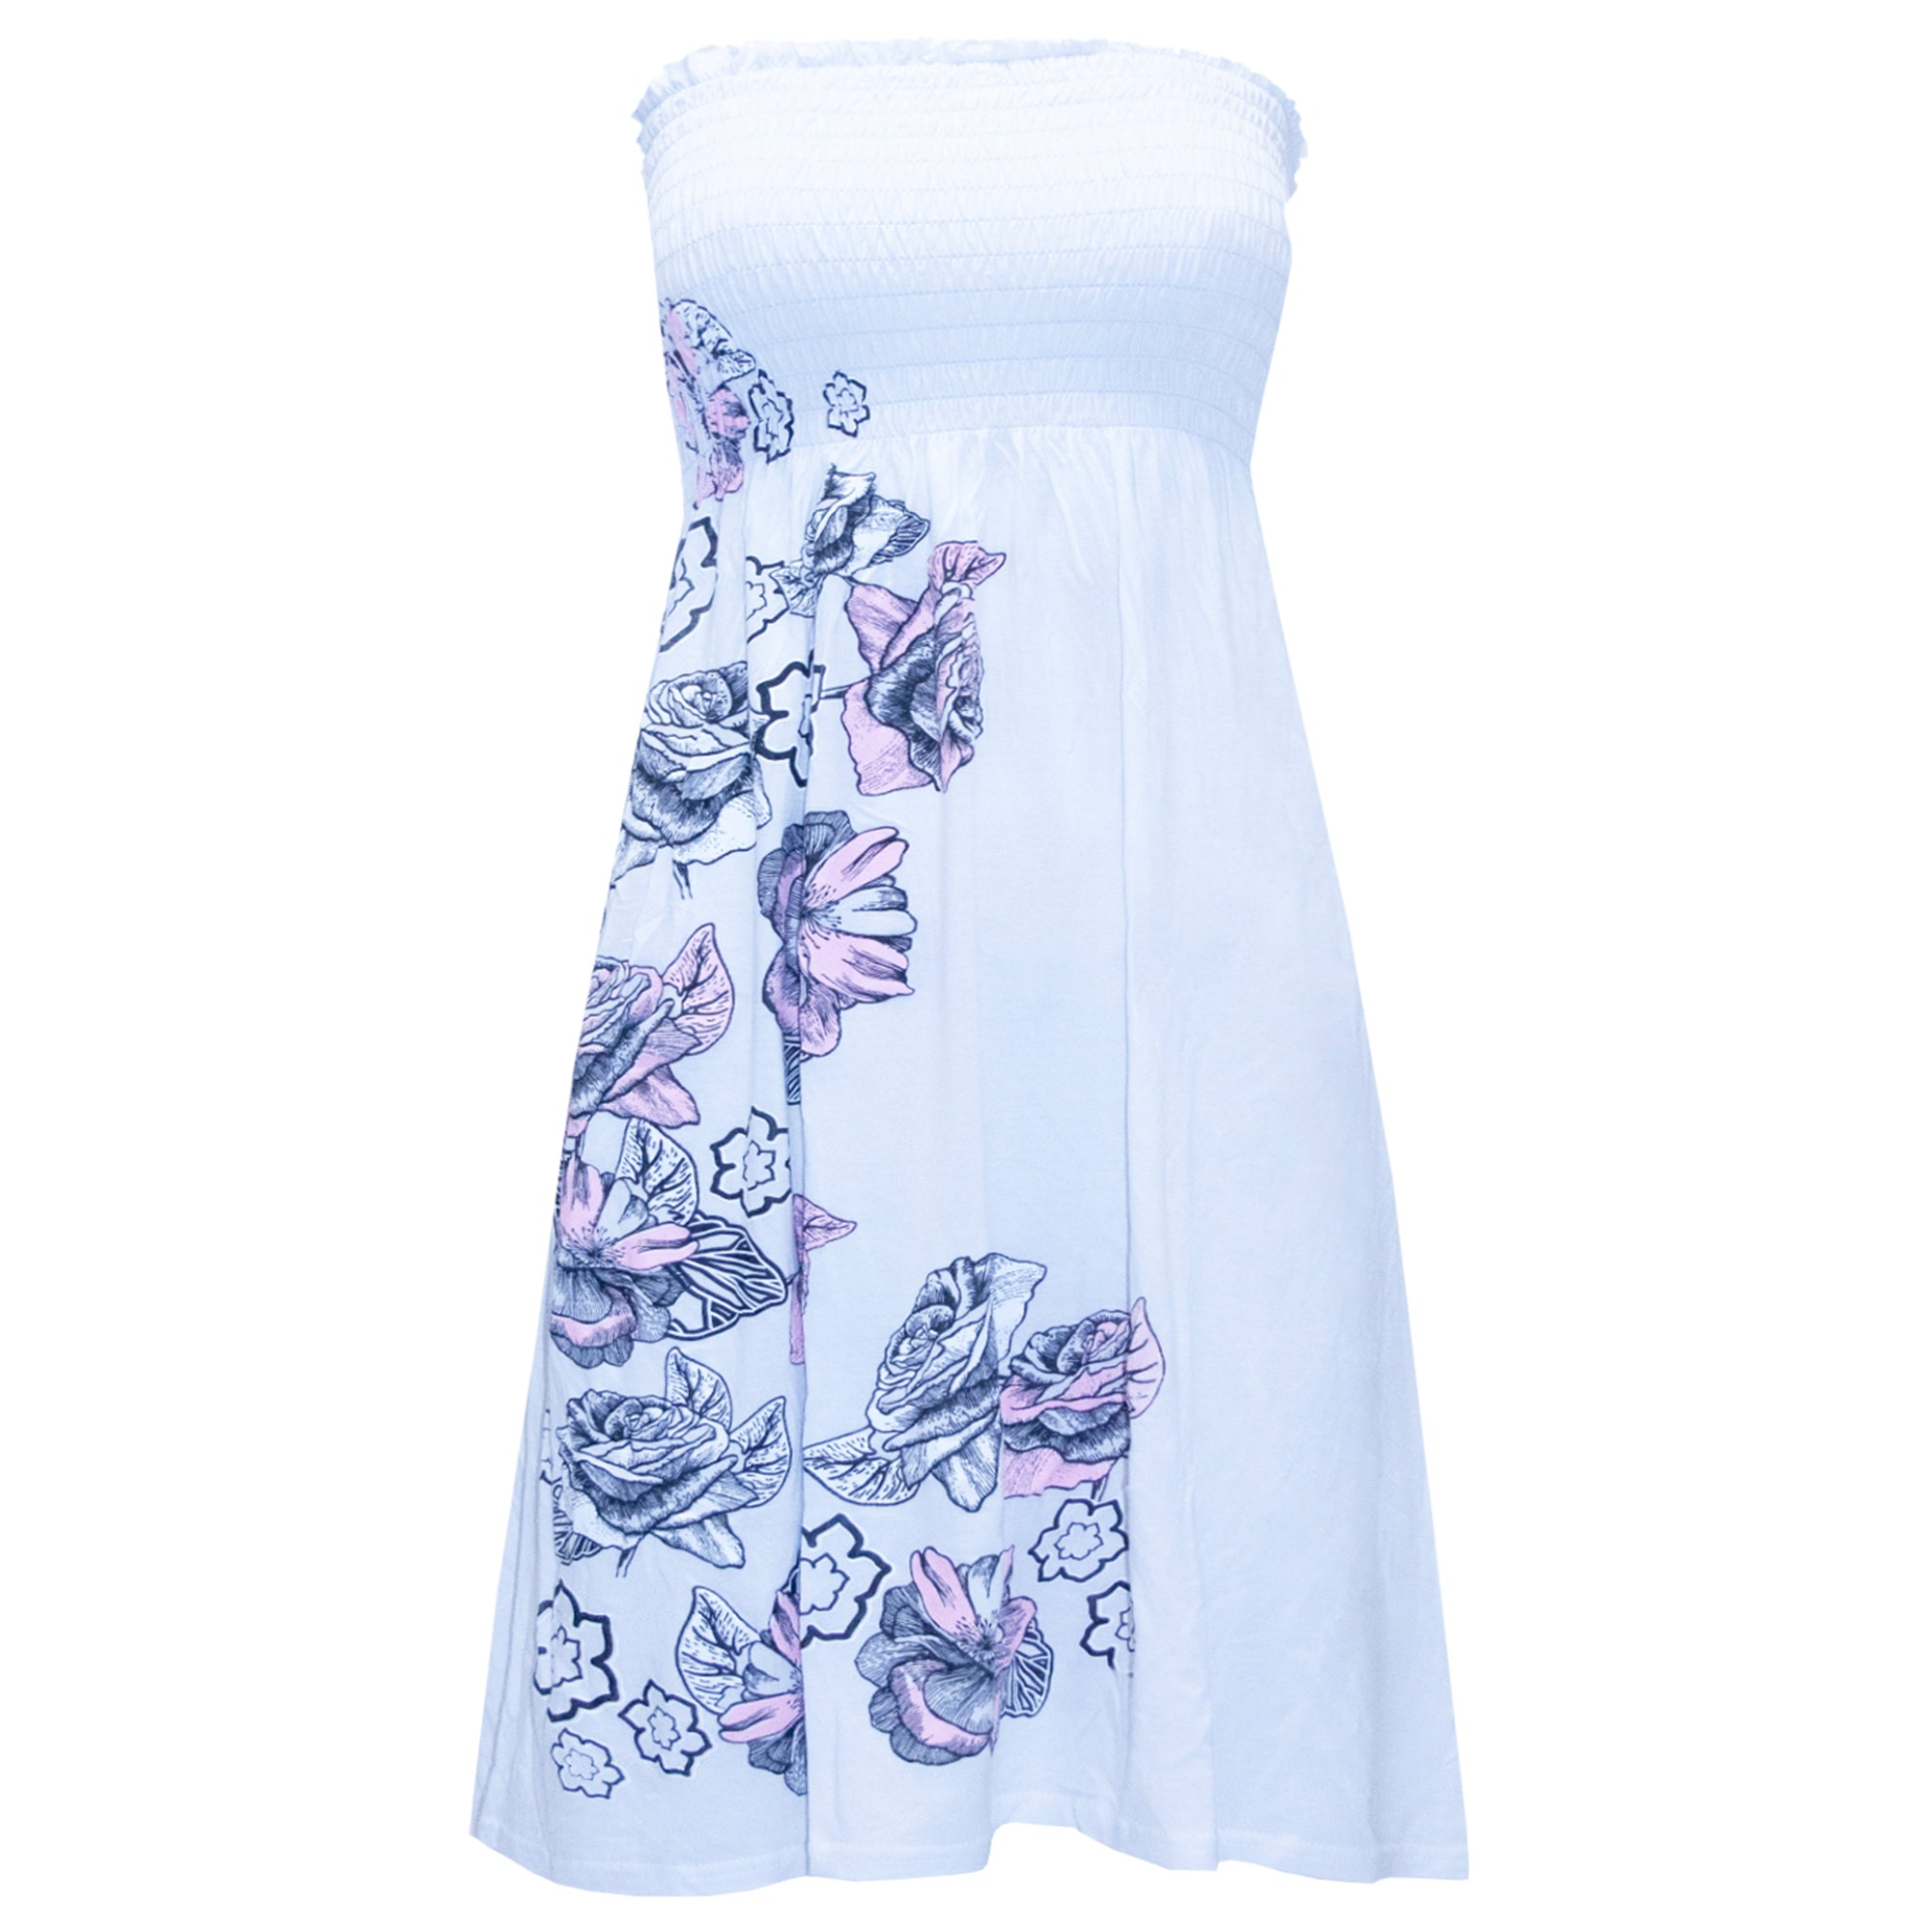 Lily Sheering Floral Bandeau Top Swing Dress